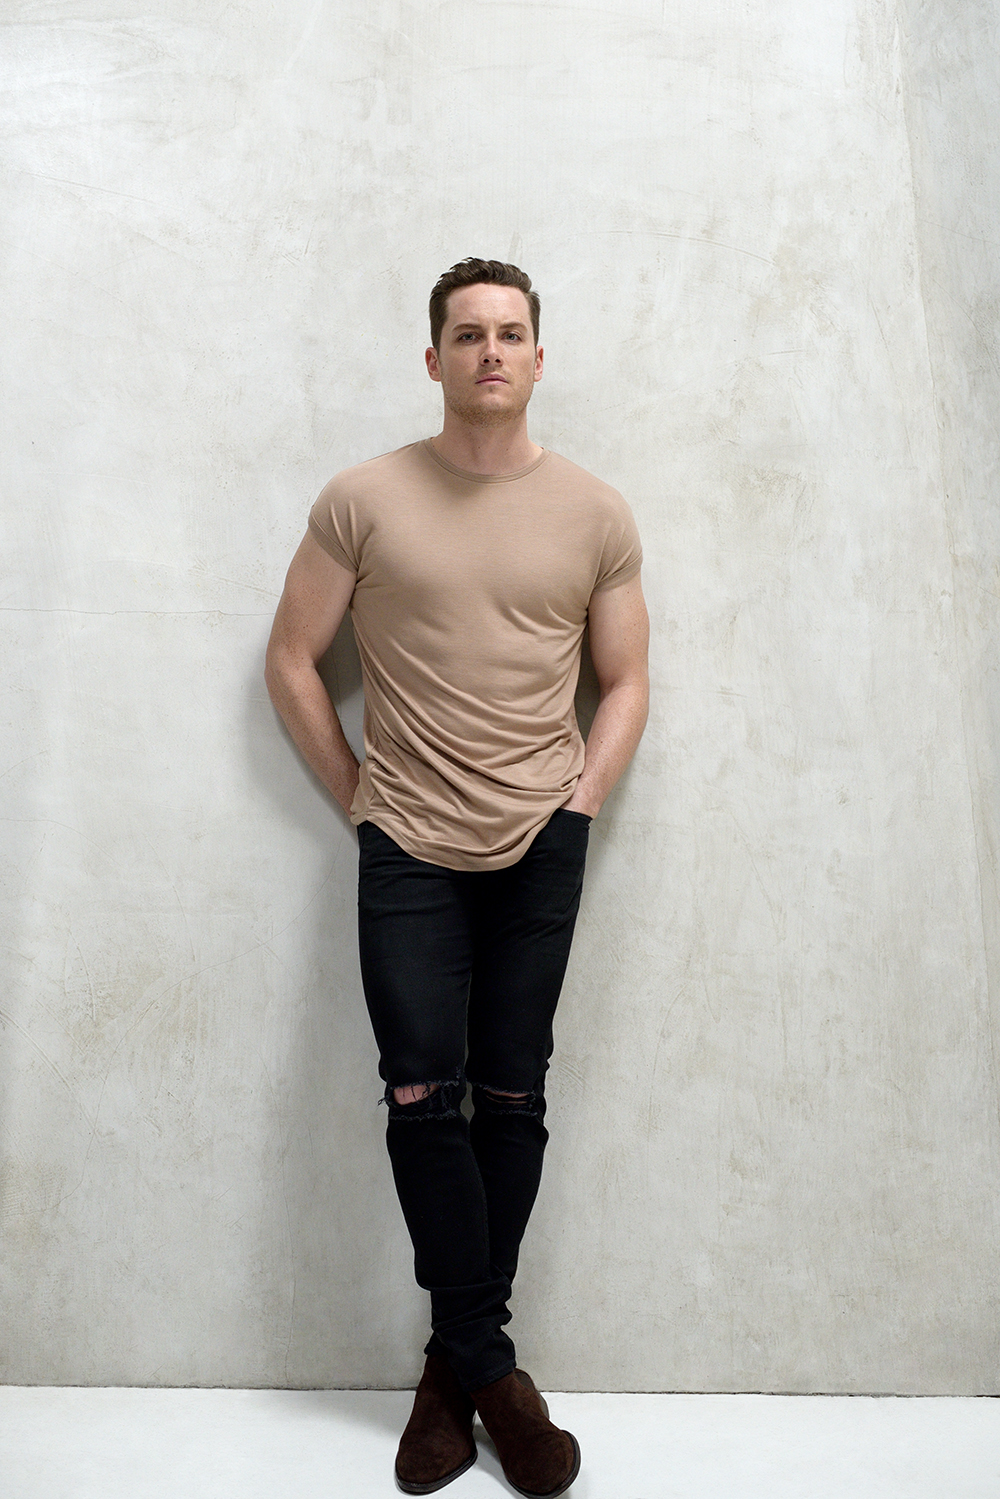 JESSE LEE SOFFER (CHICAGO PD)